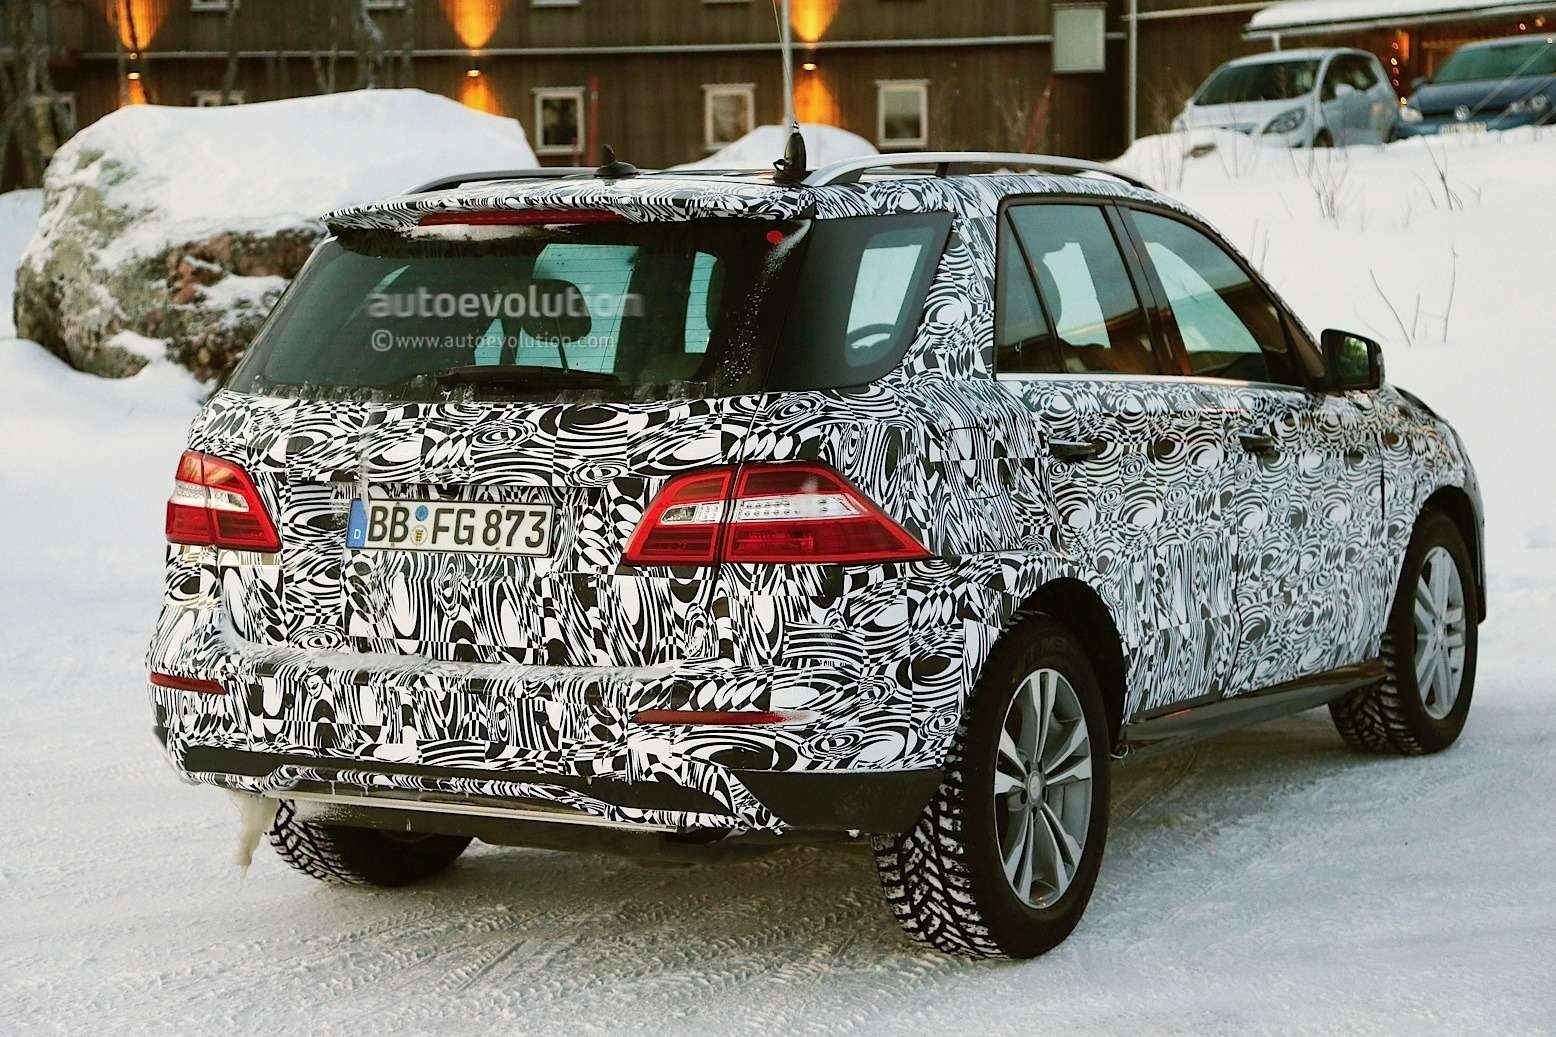 2015 mercedes benz m class facelift spied in lapland photo gallery 1080p 7 no copyright